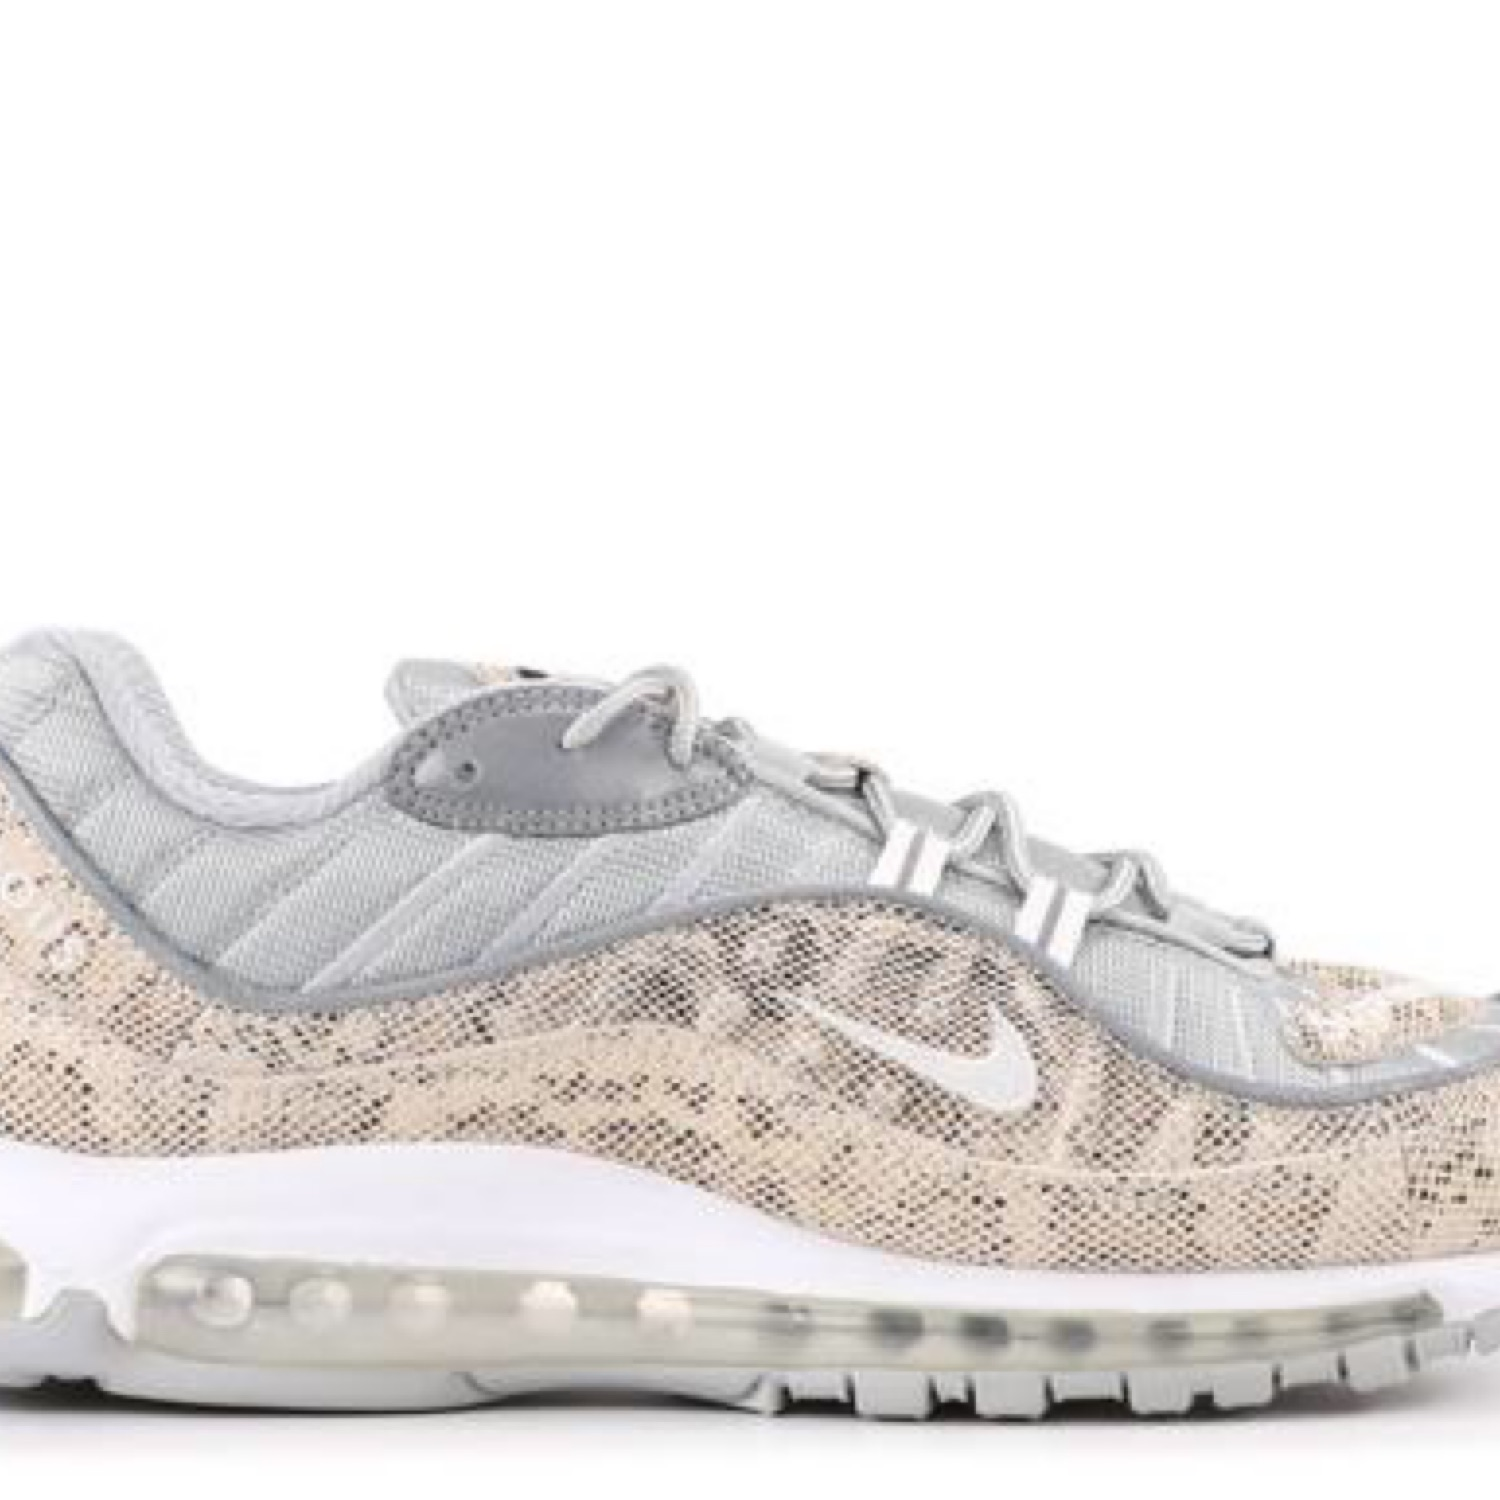 buy \u003e air max 97 supreme, Up to 67% OFF